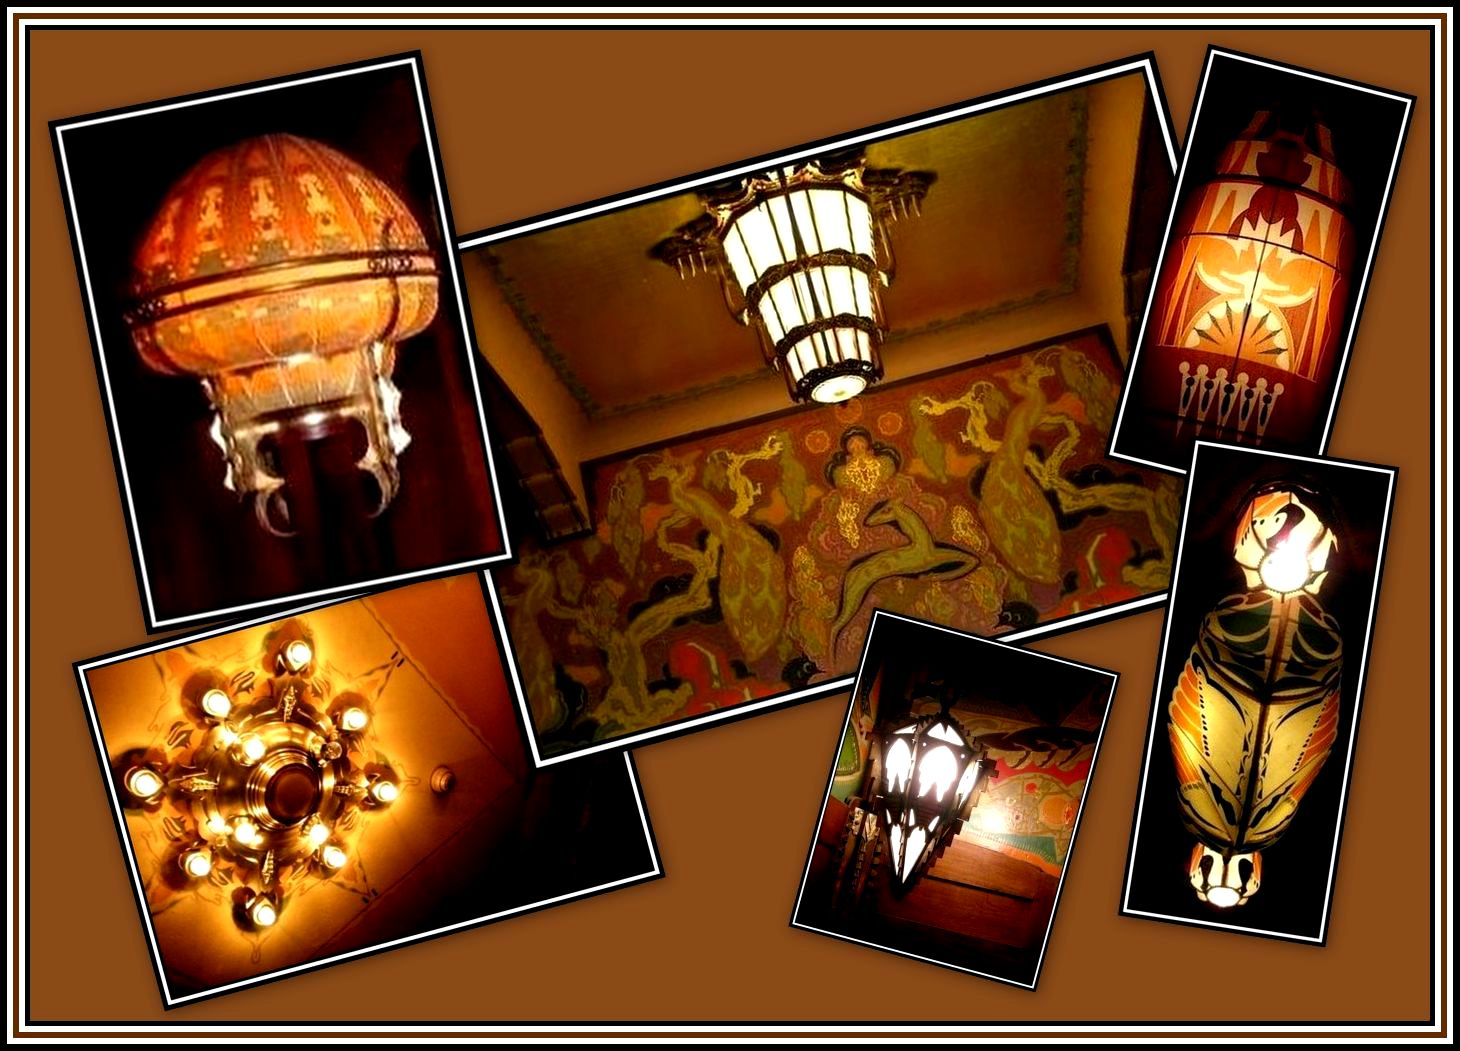 Lamps of the Tuschinski Collage